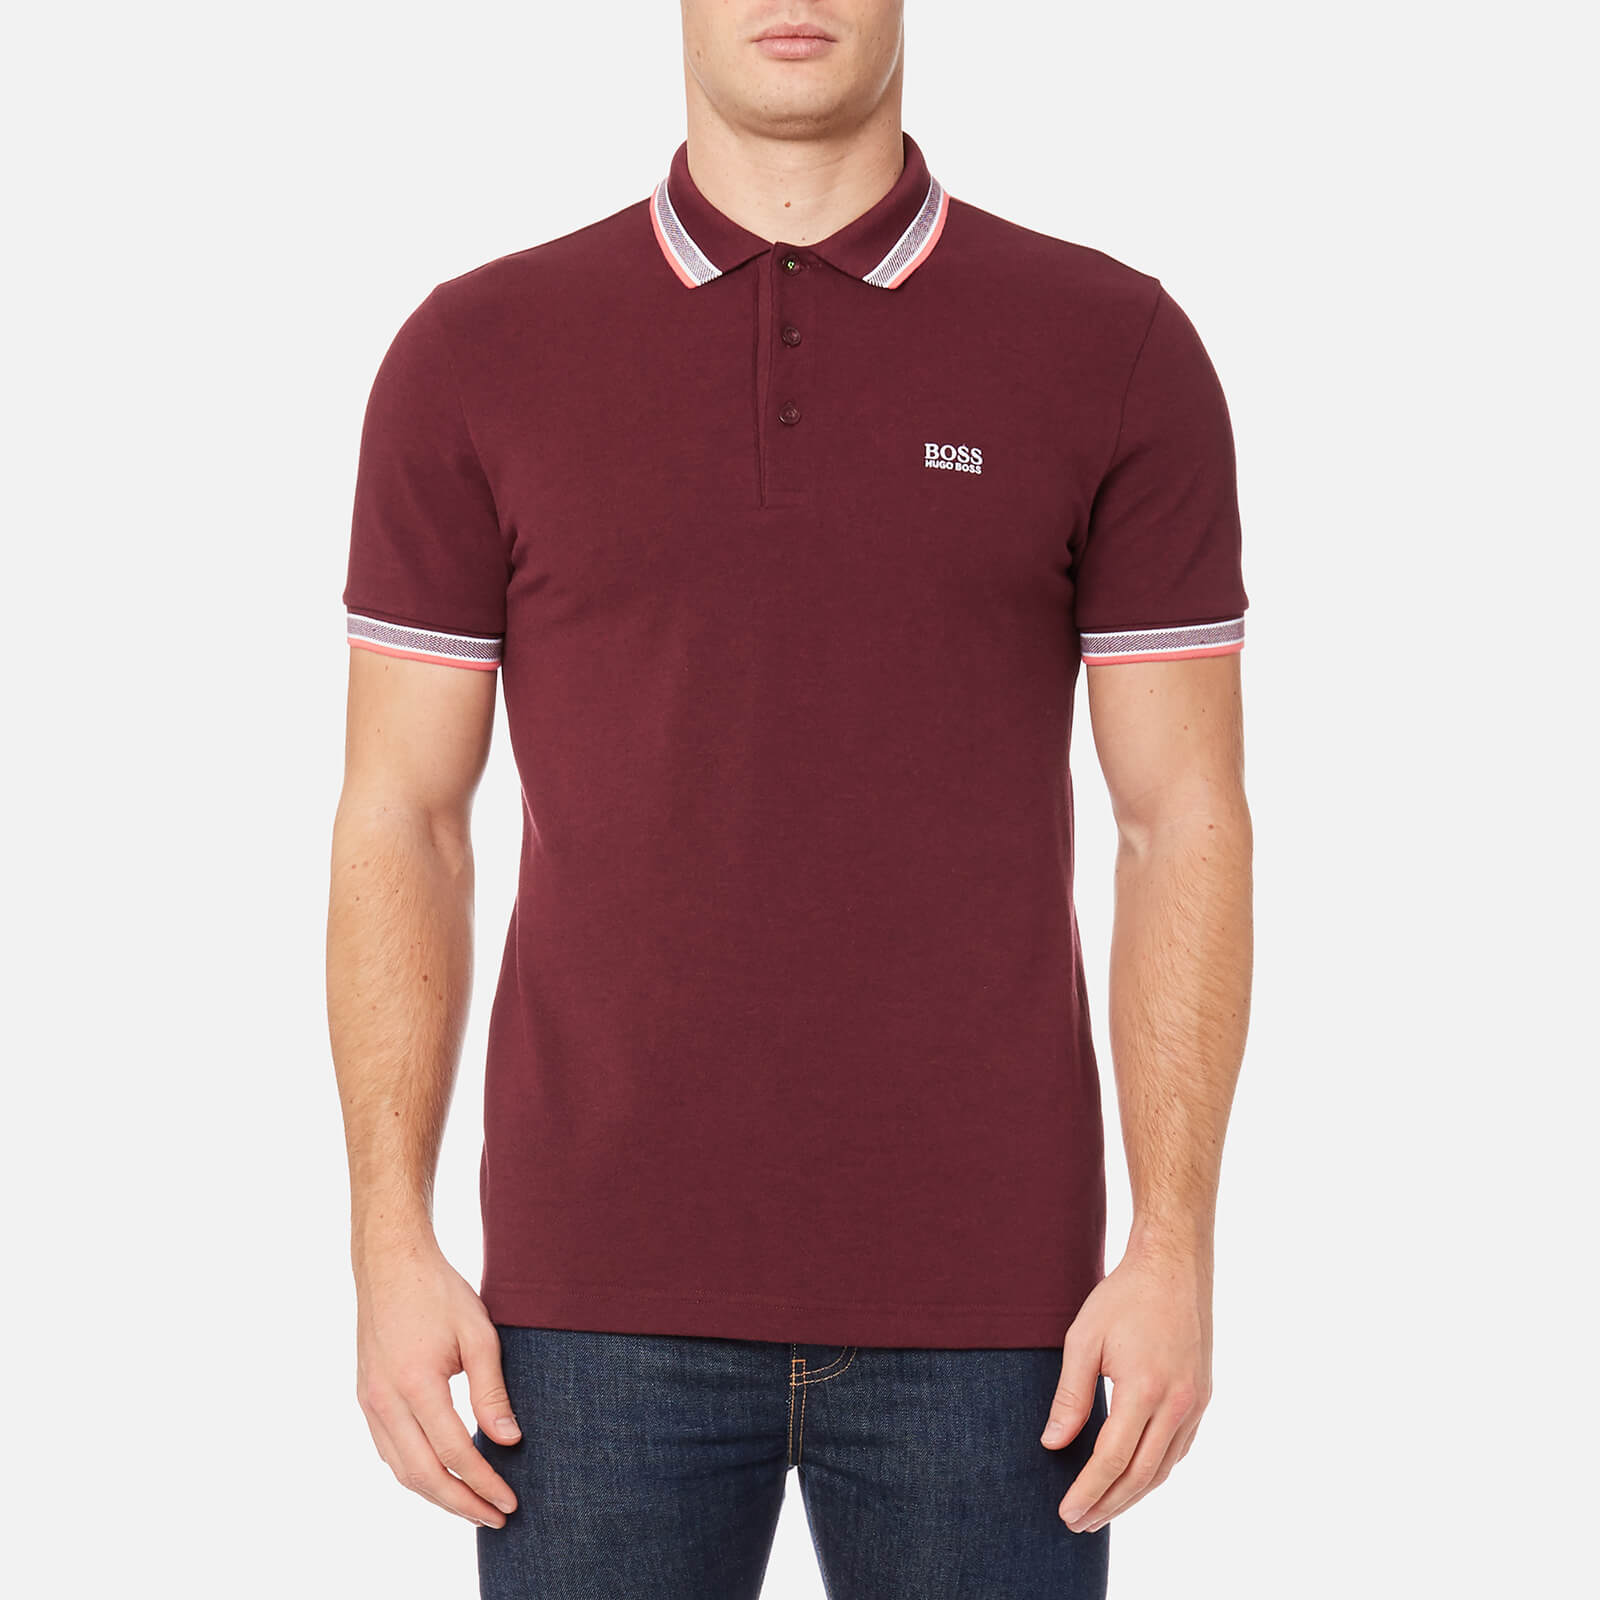 78df4b8a6 BOSS Green Men's Paddy Polo Shirt - Dark Red - Free UK Delivery over £50